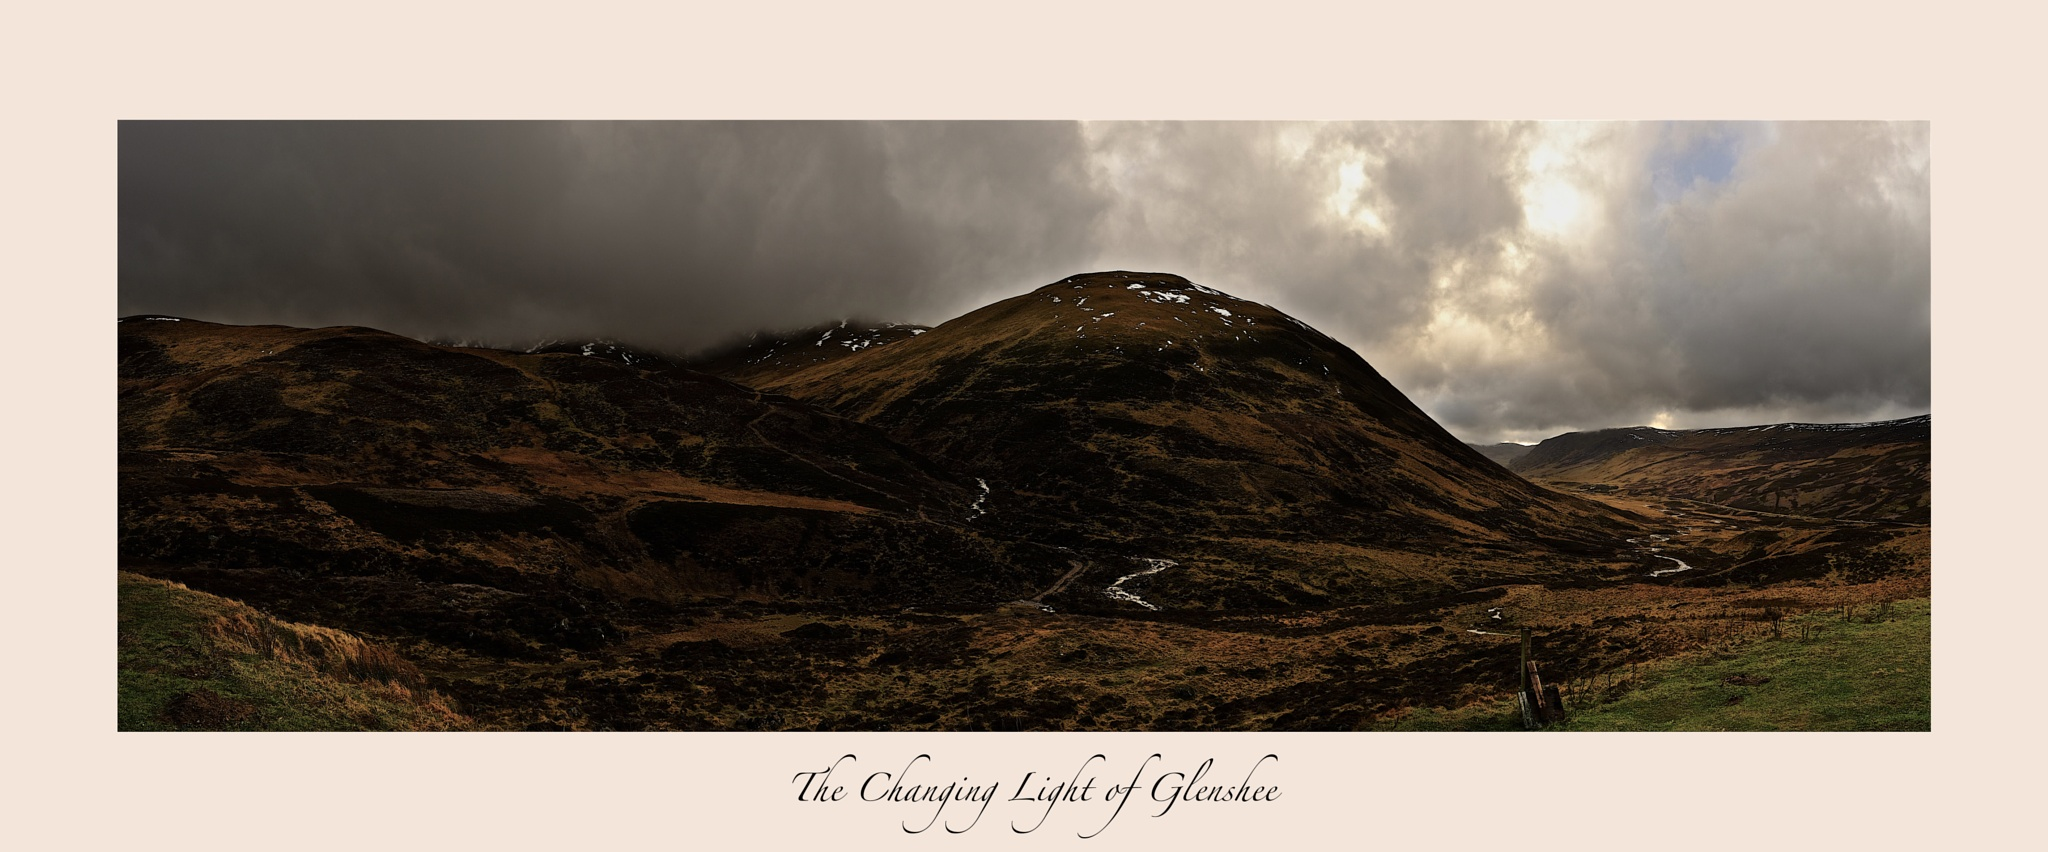 The Changing light of Glenshee by dundeedavie